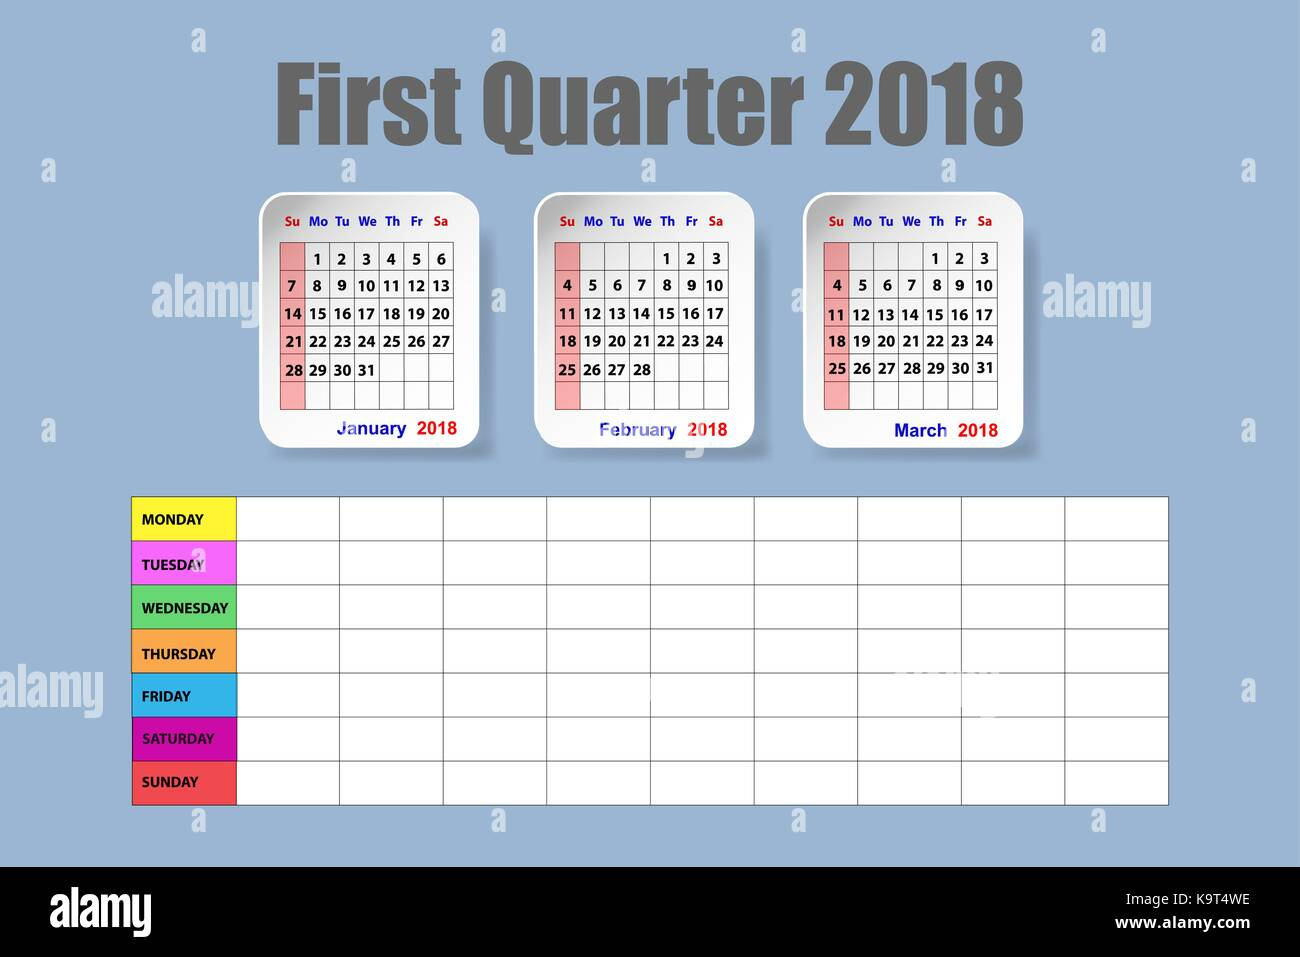 calendar for first quarter of 2018 year on the blue background with the empty weekly schedule